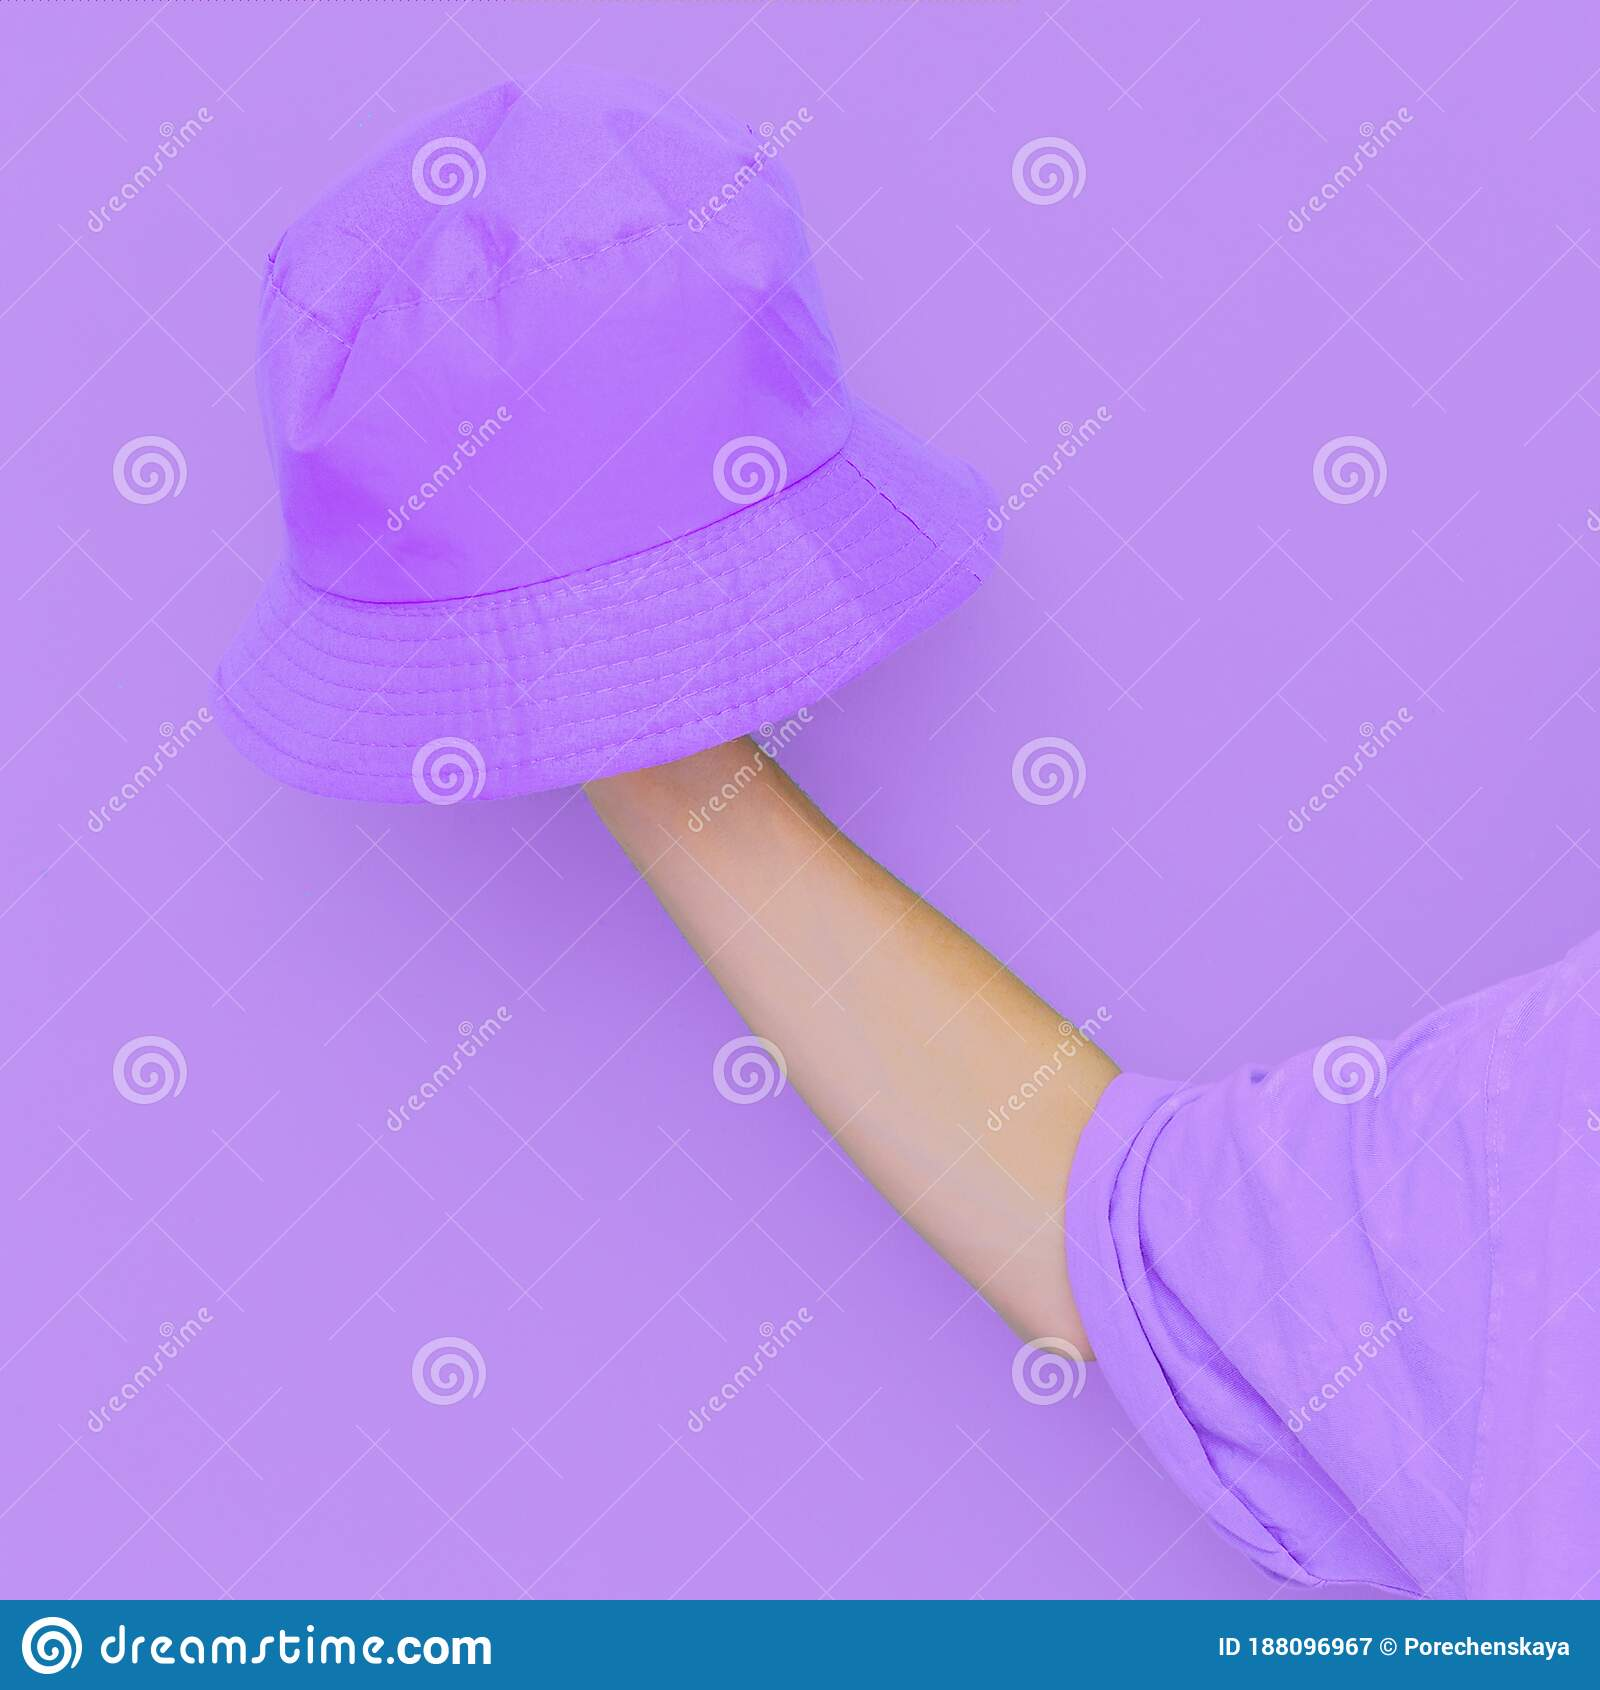 Purple Monochrome Aesthetic Minimal Design Bucket Hat Trends Street Style Wear Stock Image Image Of Summer Trendy 188096967